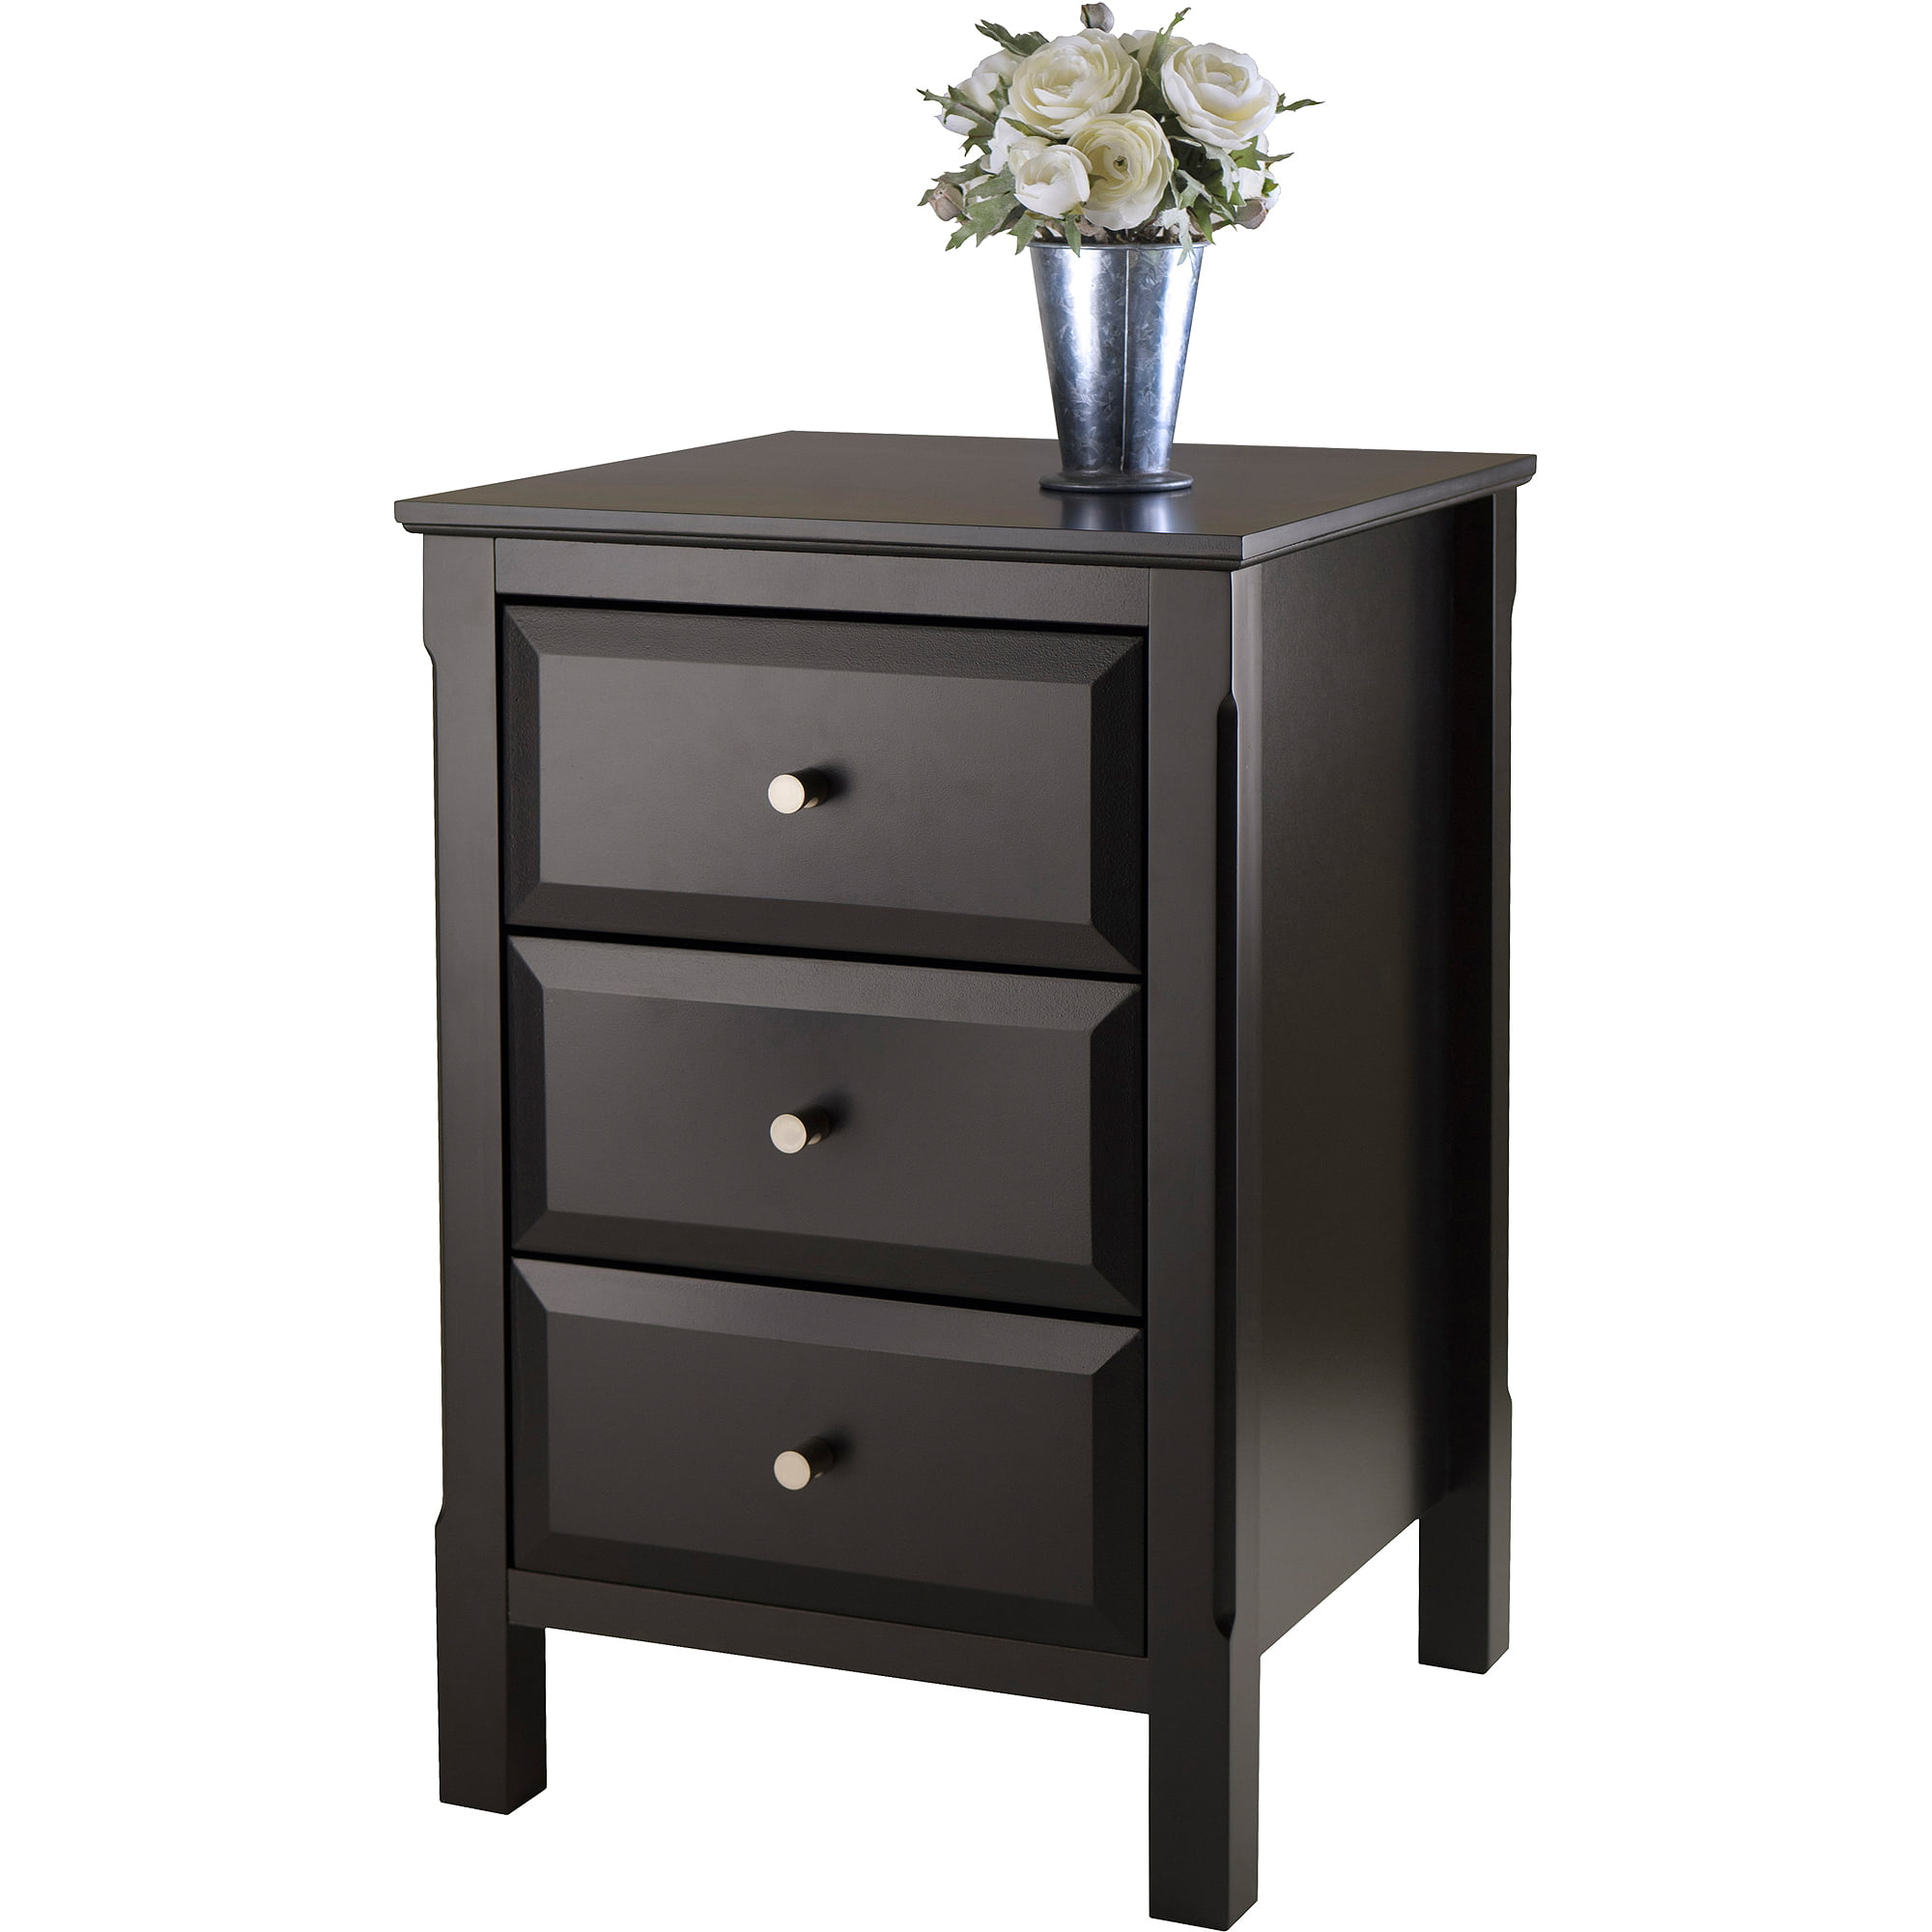 Exceptionnel Timmy Nightstand Accent Table, Black   Walmart.com